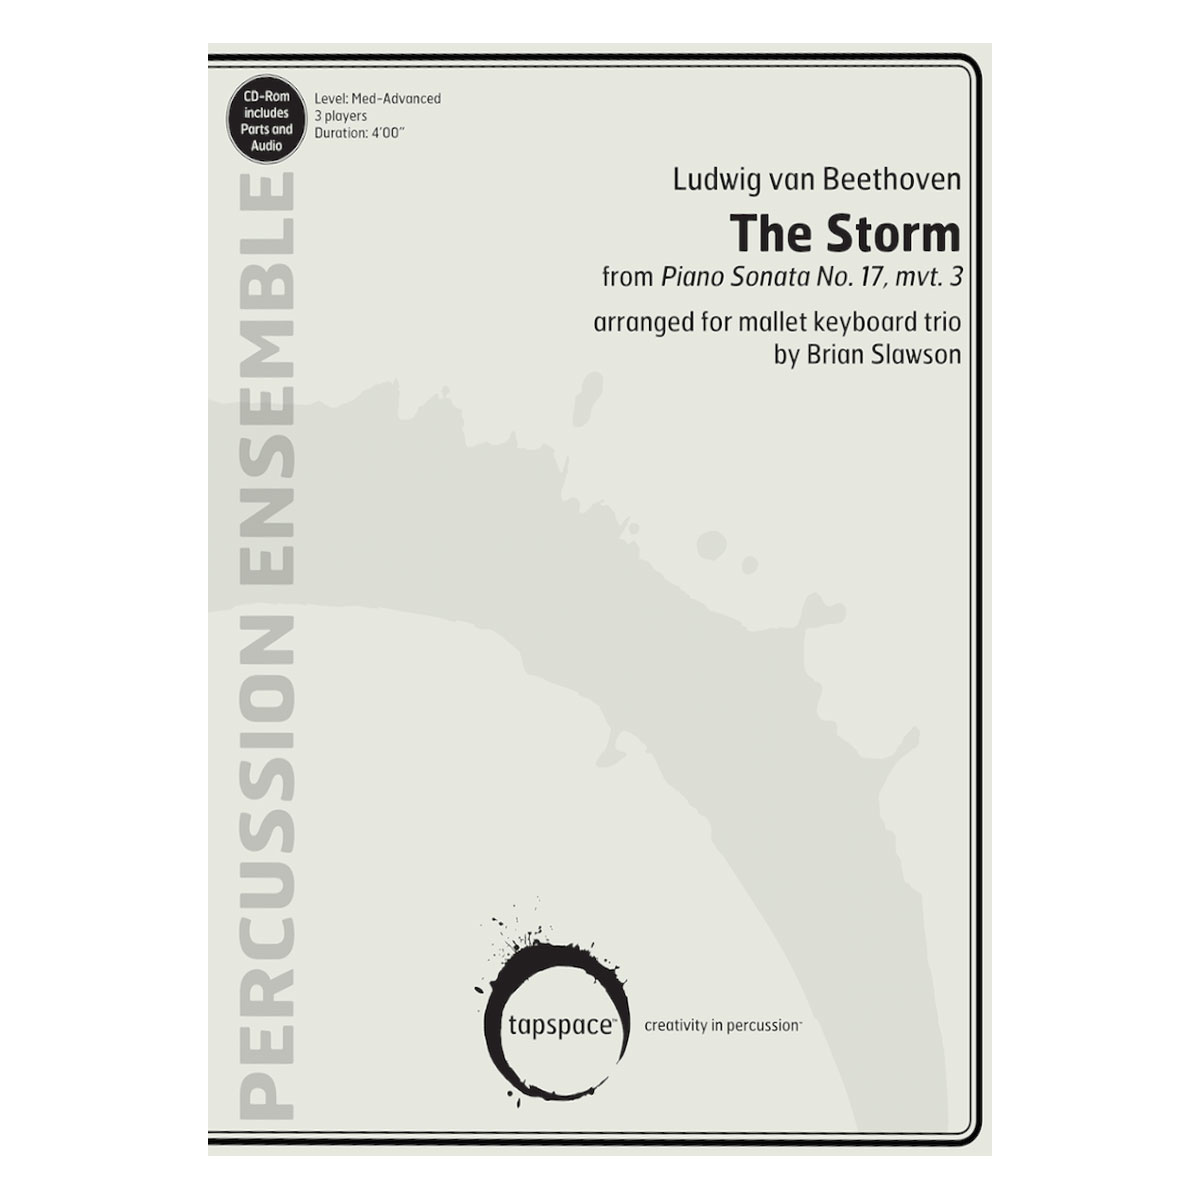 The Storm by Ludwig van Beethoven arr. Brian Slawson